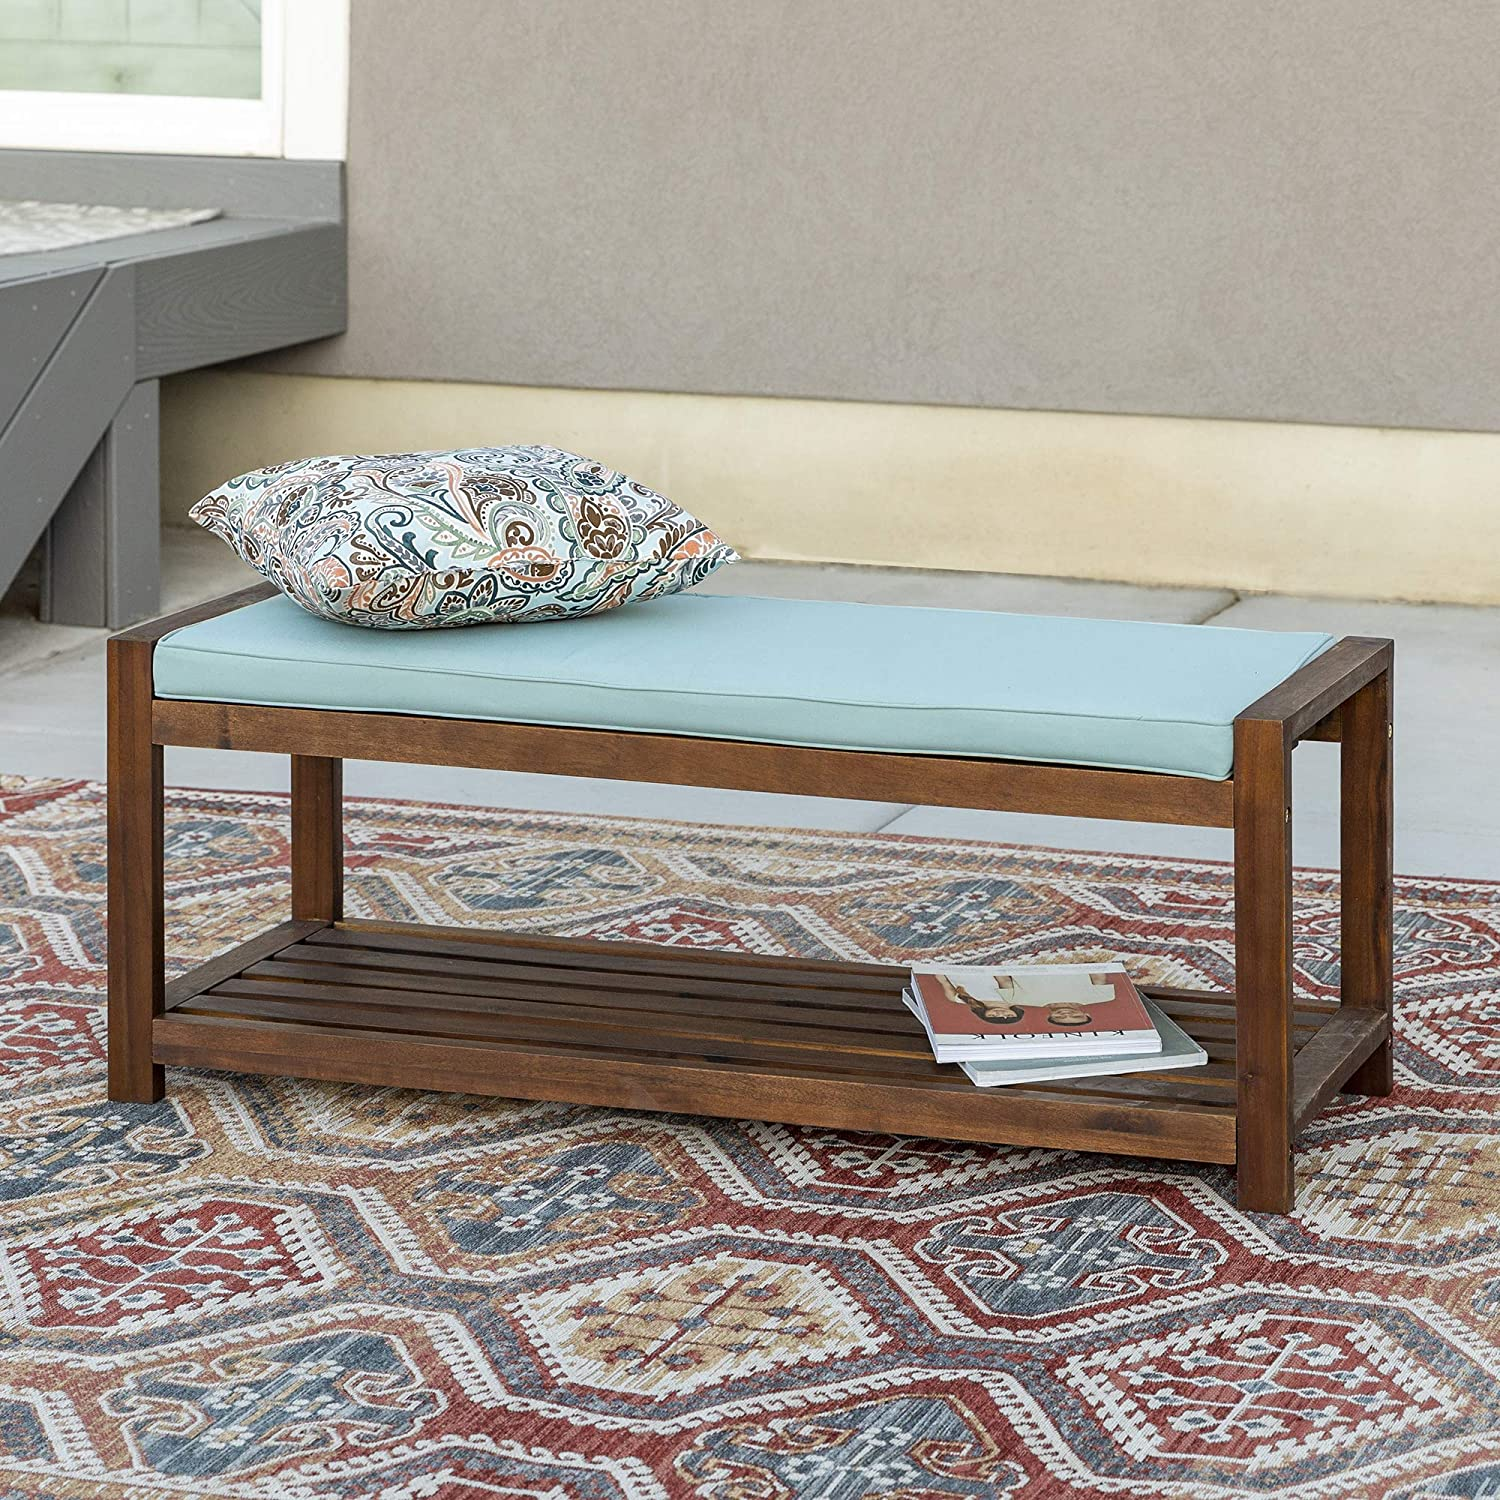 Walker Edison Willmington Solid Acacia Wood Slatted Outdoor Bench with Cushion, 48 Inch, Dark Brown and Blue